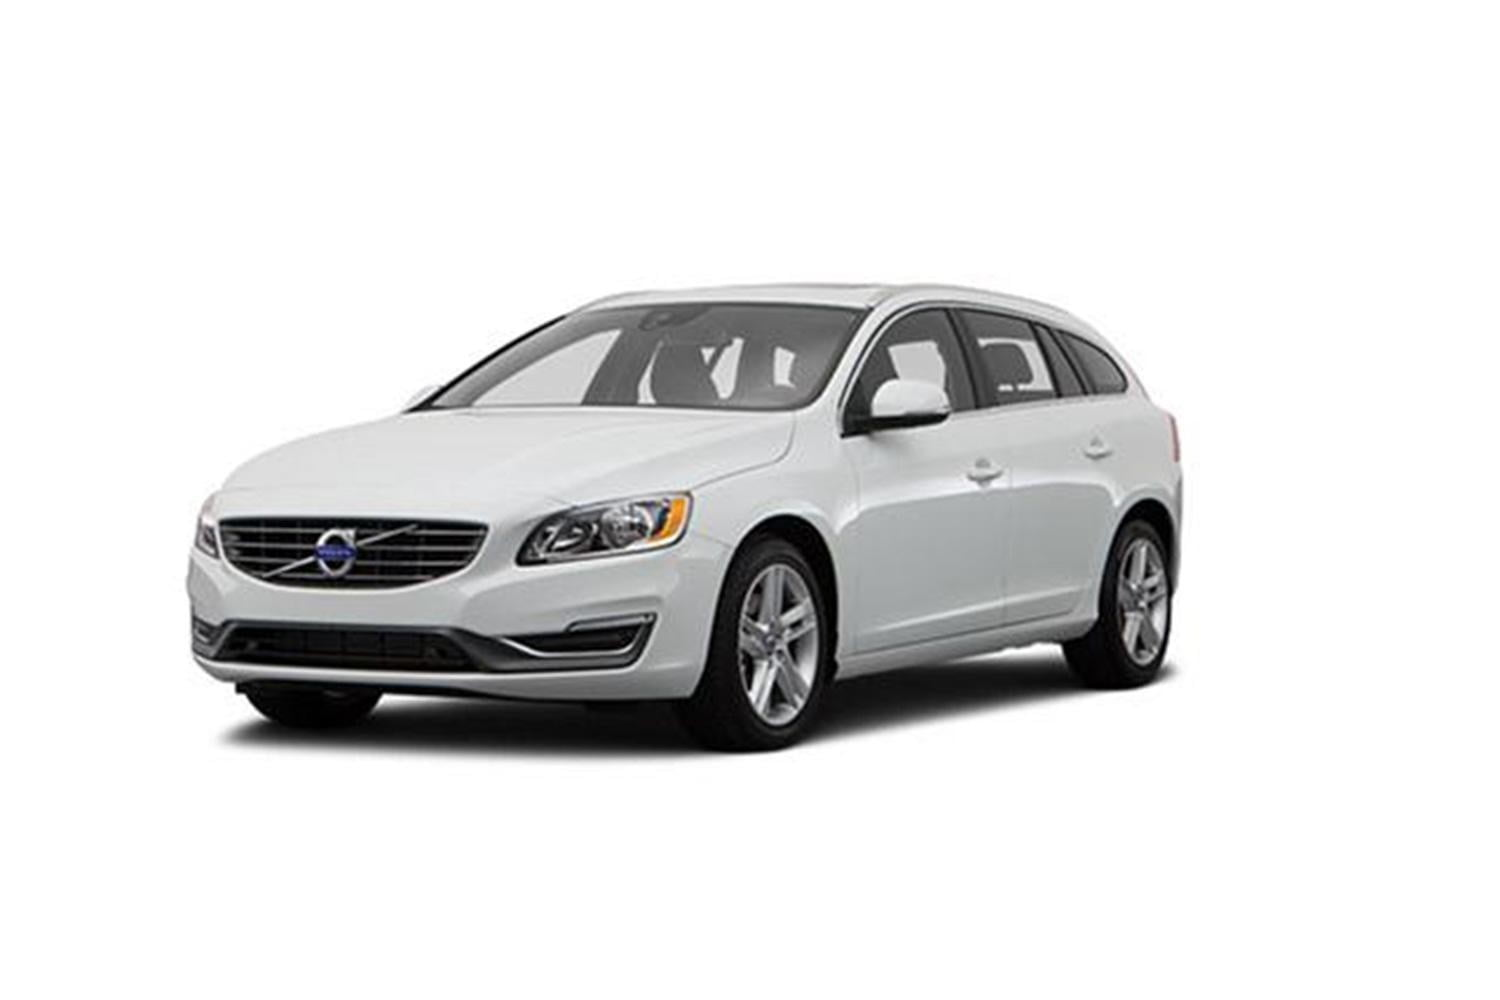 2015-Volvo-V60-press-image